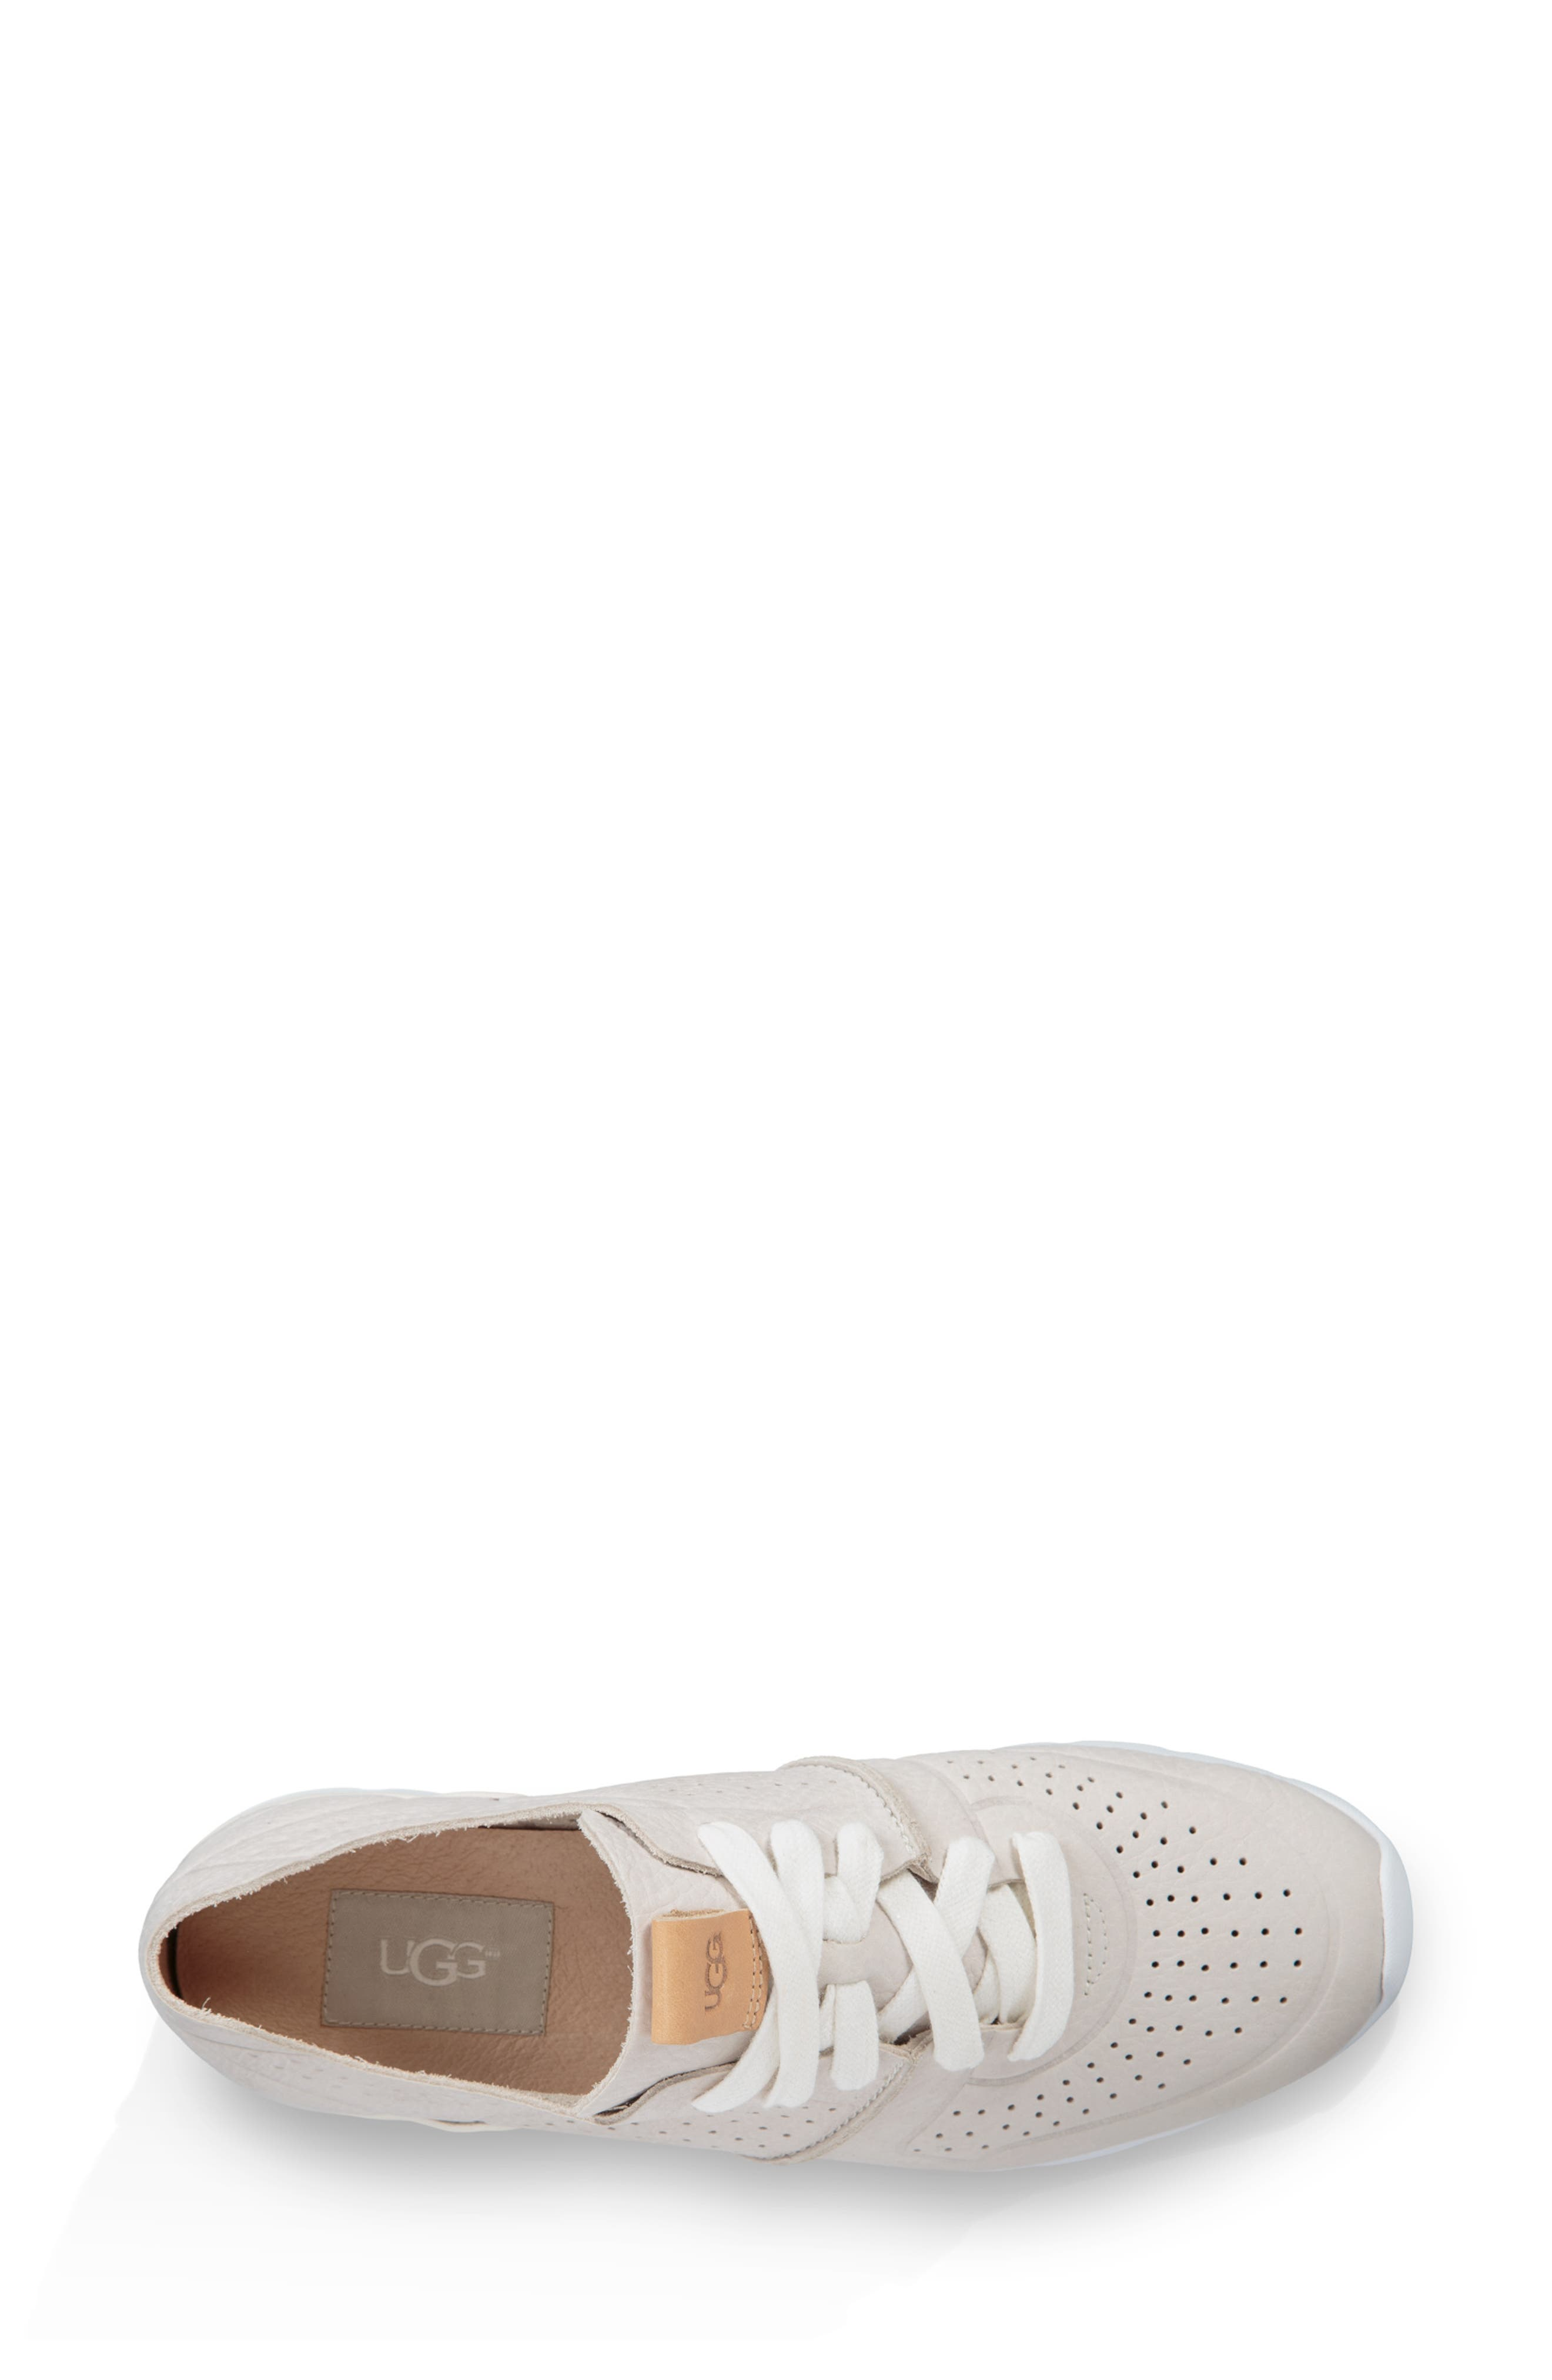 UGG<SUP>®</SUP>, Tye Sneaker, Alternate thumbnail 4, color, COCONUT MILK LEATHER